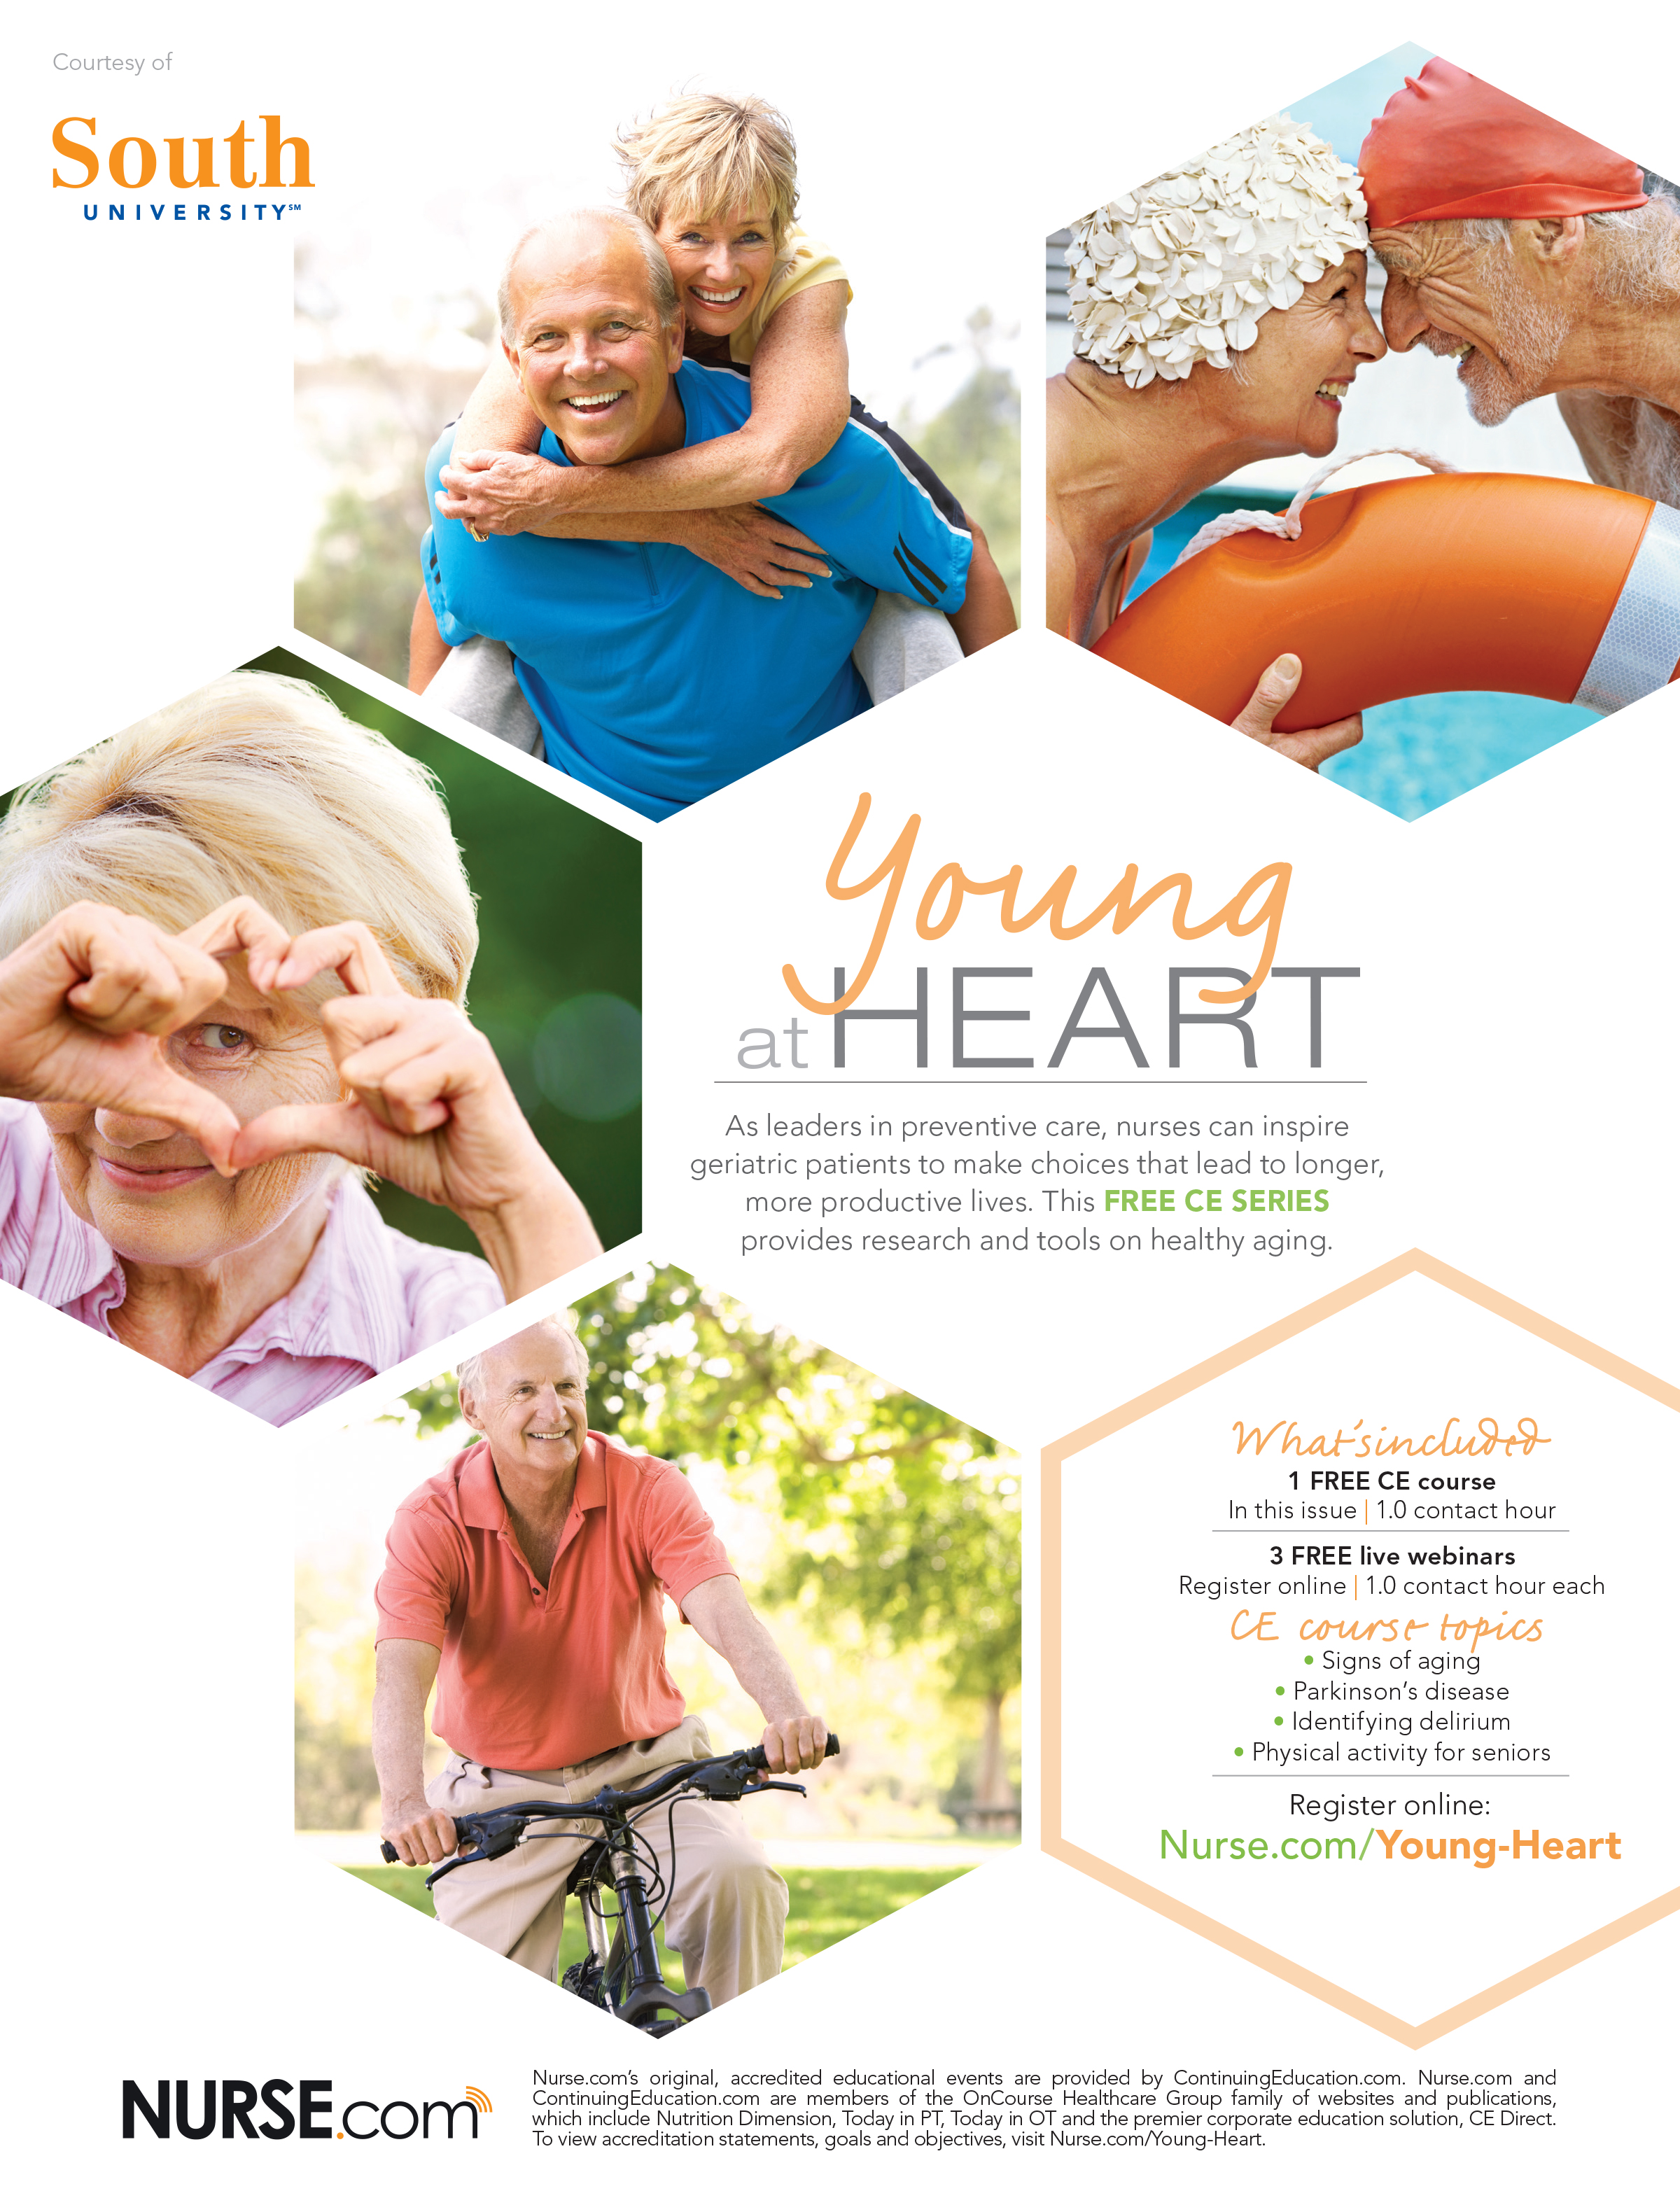 South Univ. – Young at Heart